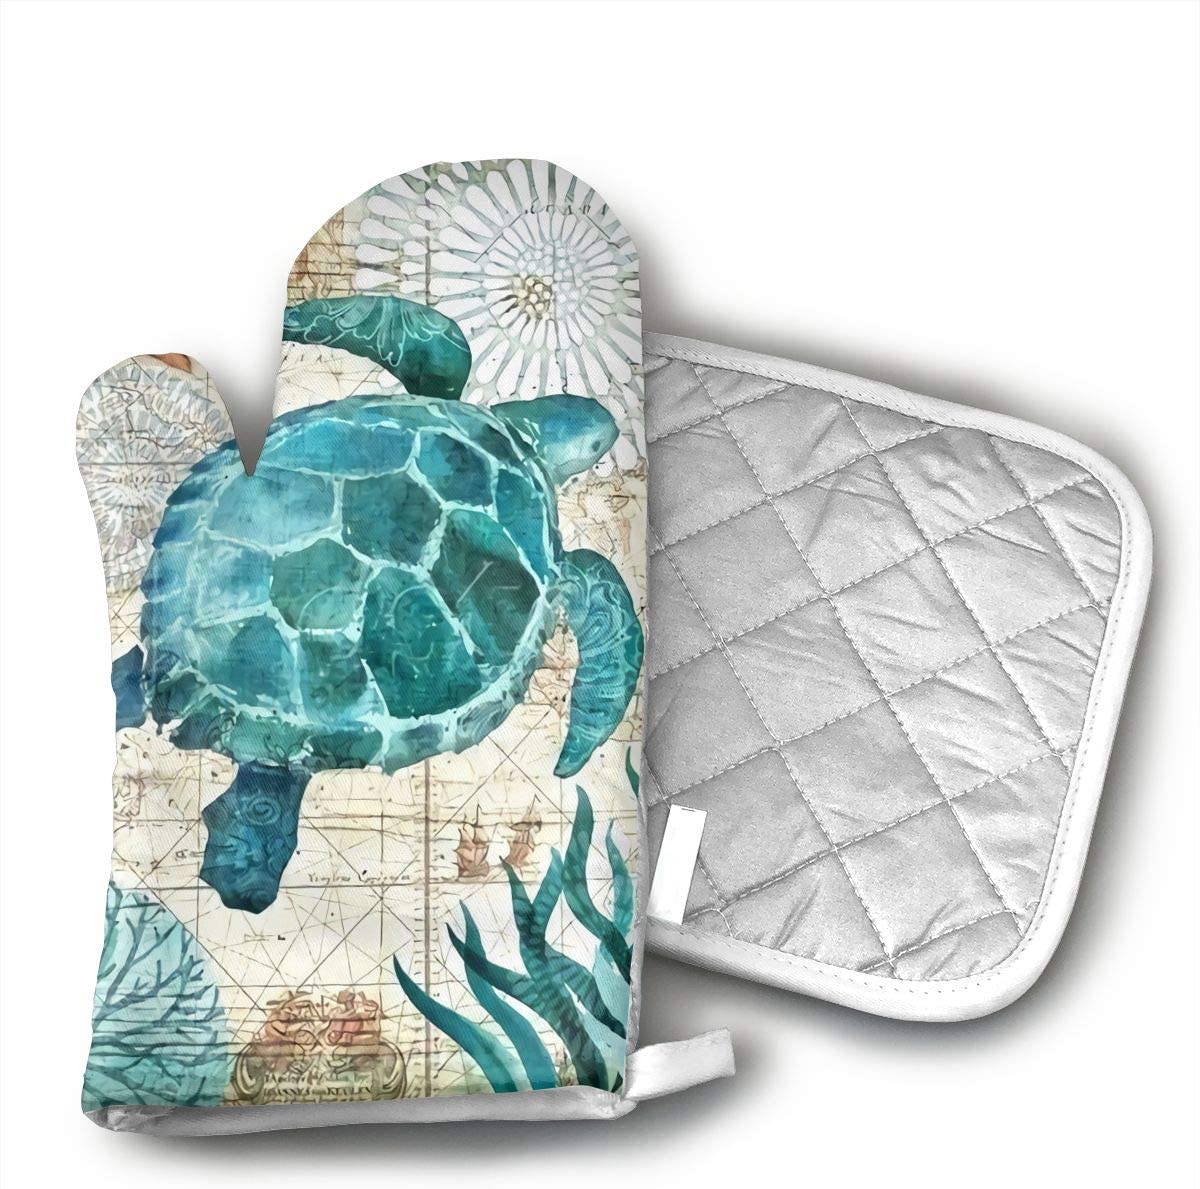 HEPKL Oven Mitts and Potholders Marine Life Theme Sea Turtle Non-Slip Grip Heat Resistant Oven Gloves BBQ Cooking Baking Grilling